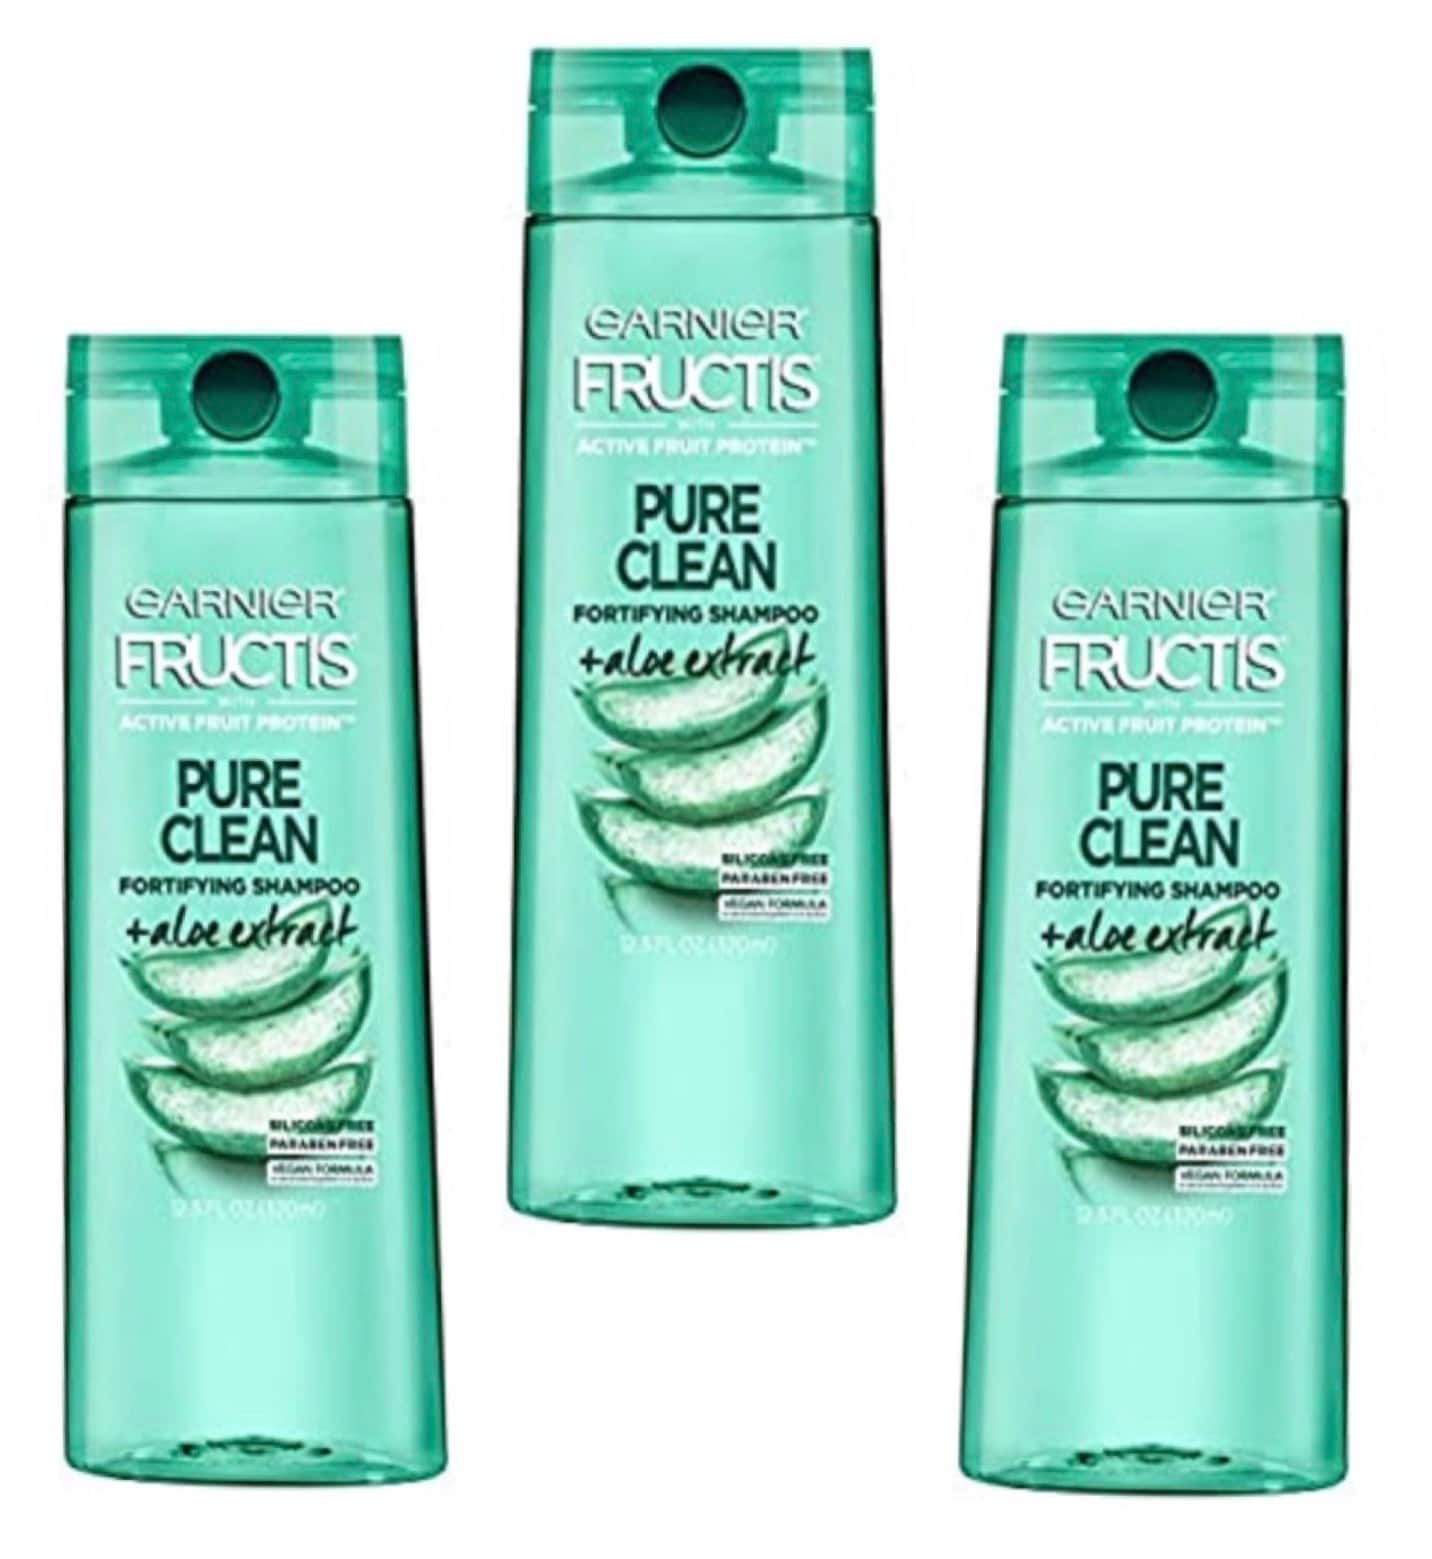 12.5-Oz Garnier Fructis Shampoo w/ Aloe Extract 3 for $5.22 ($1.74 each) w/ S&S + Free Shipping w/ Prime or on $25+